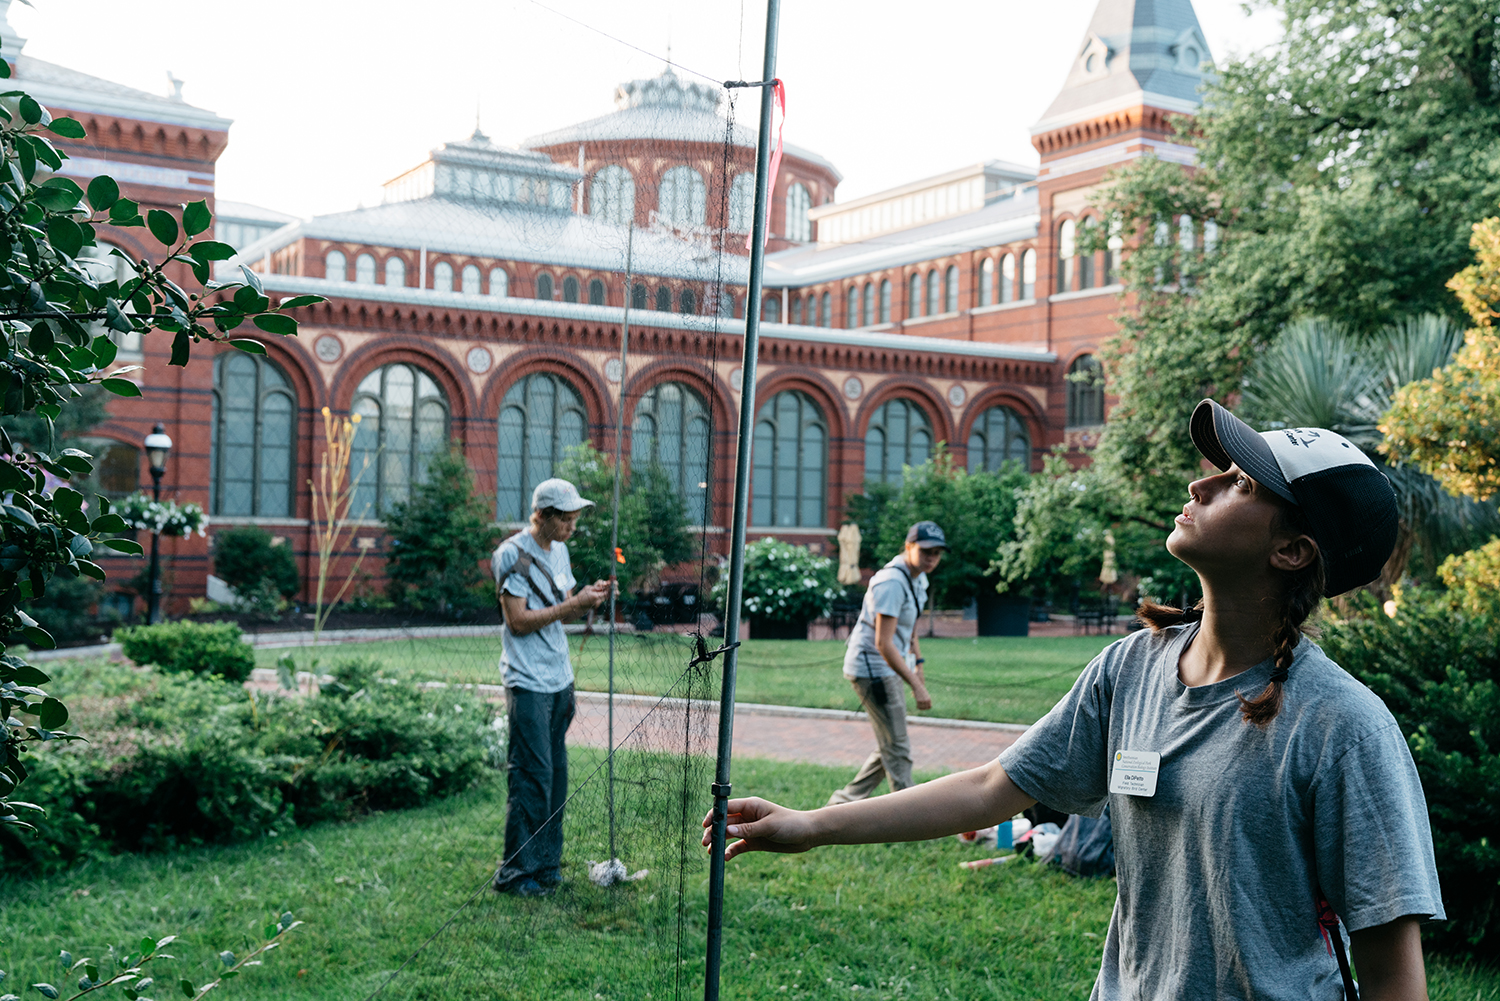 Researchers set up a net in front of a brick building near Washington, D.C.'s National Mall